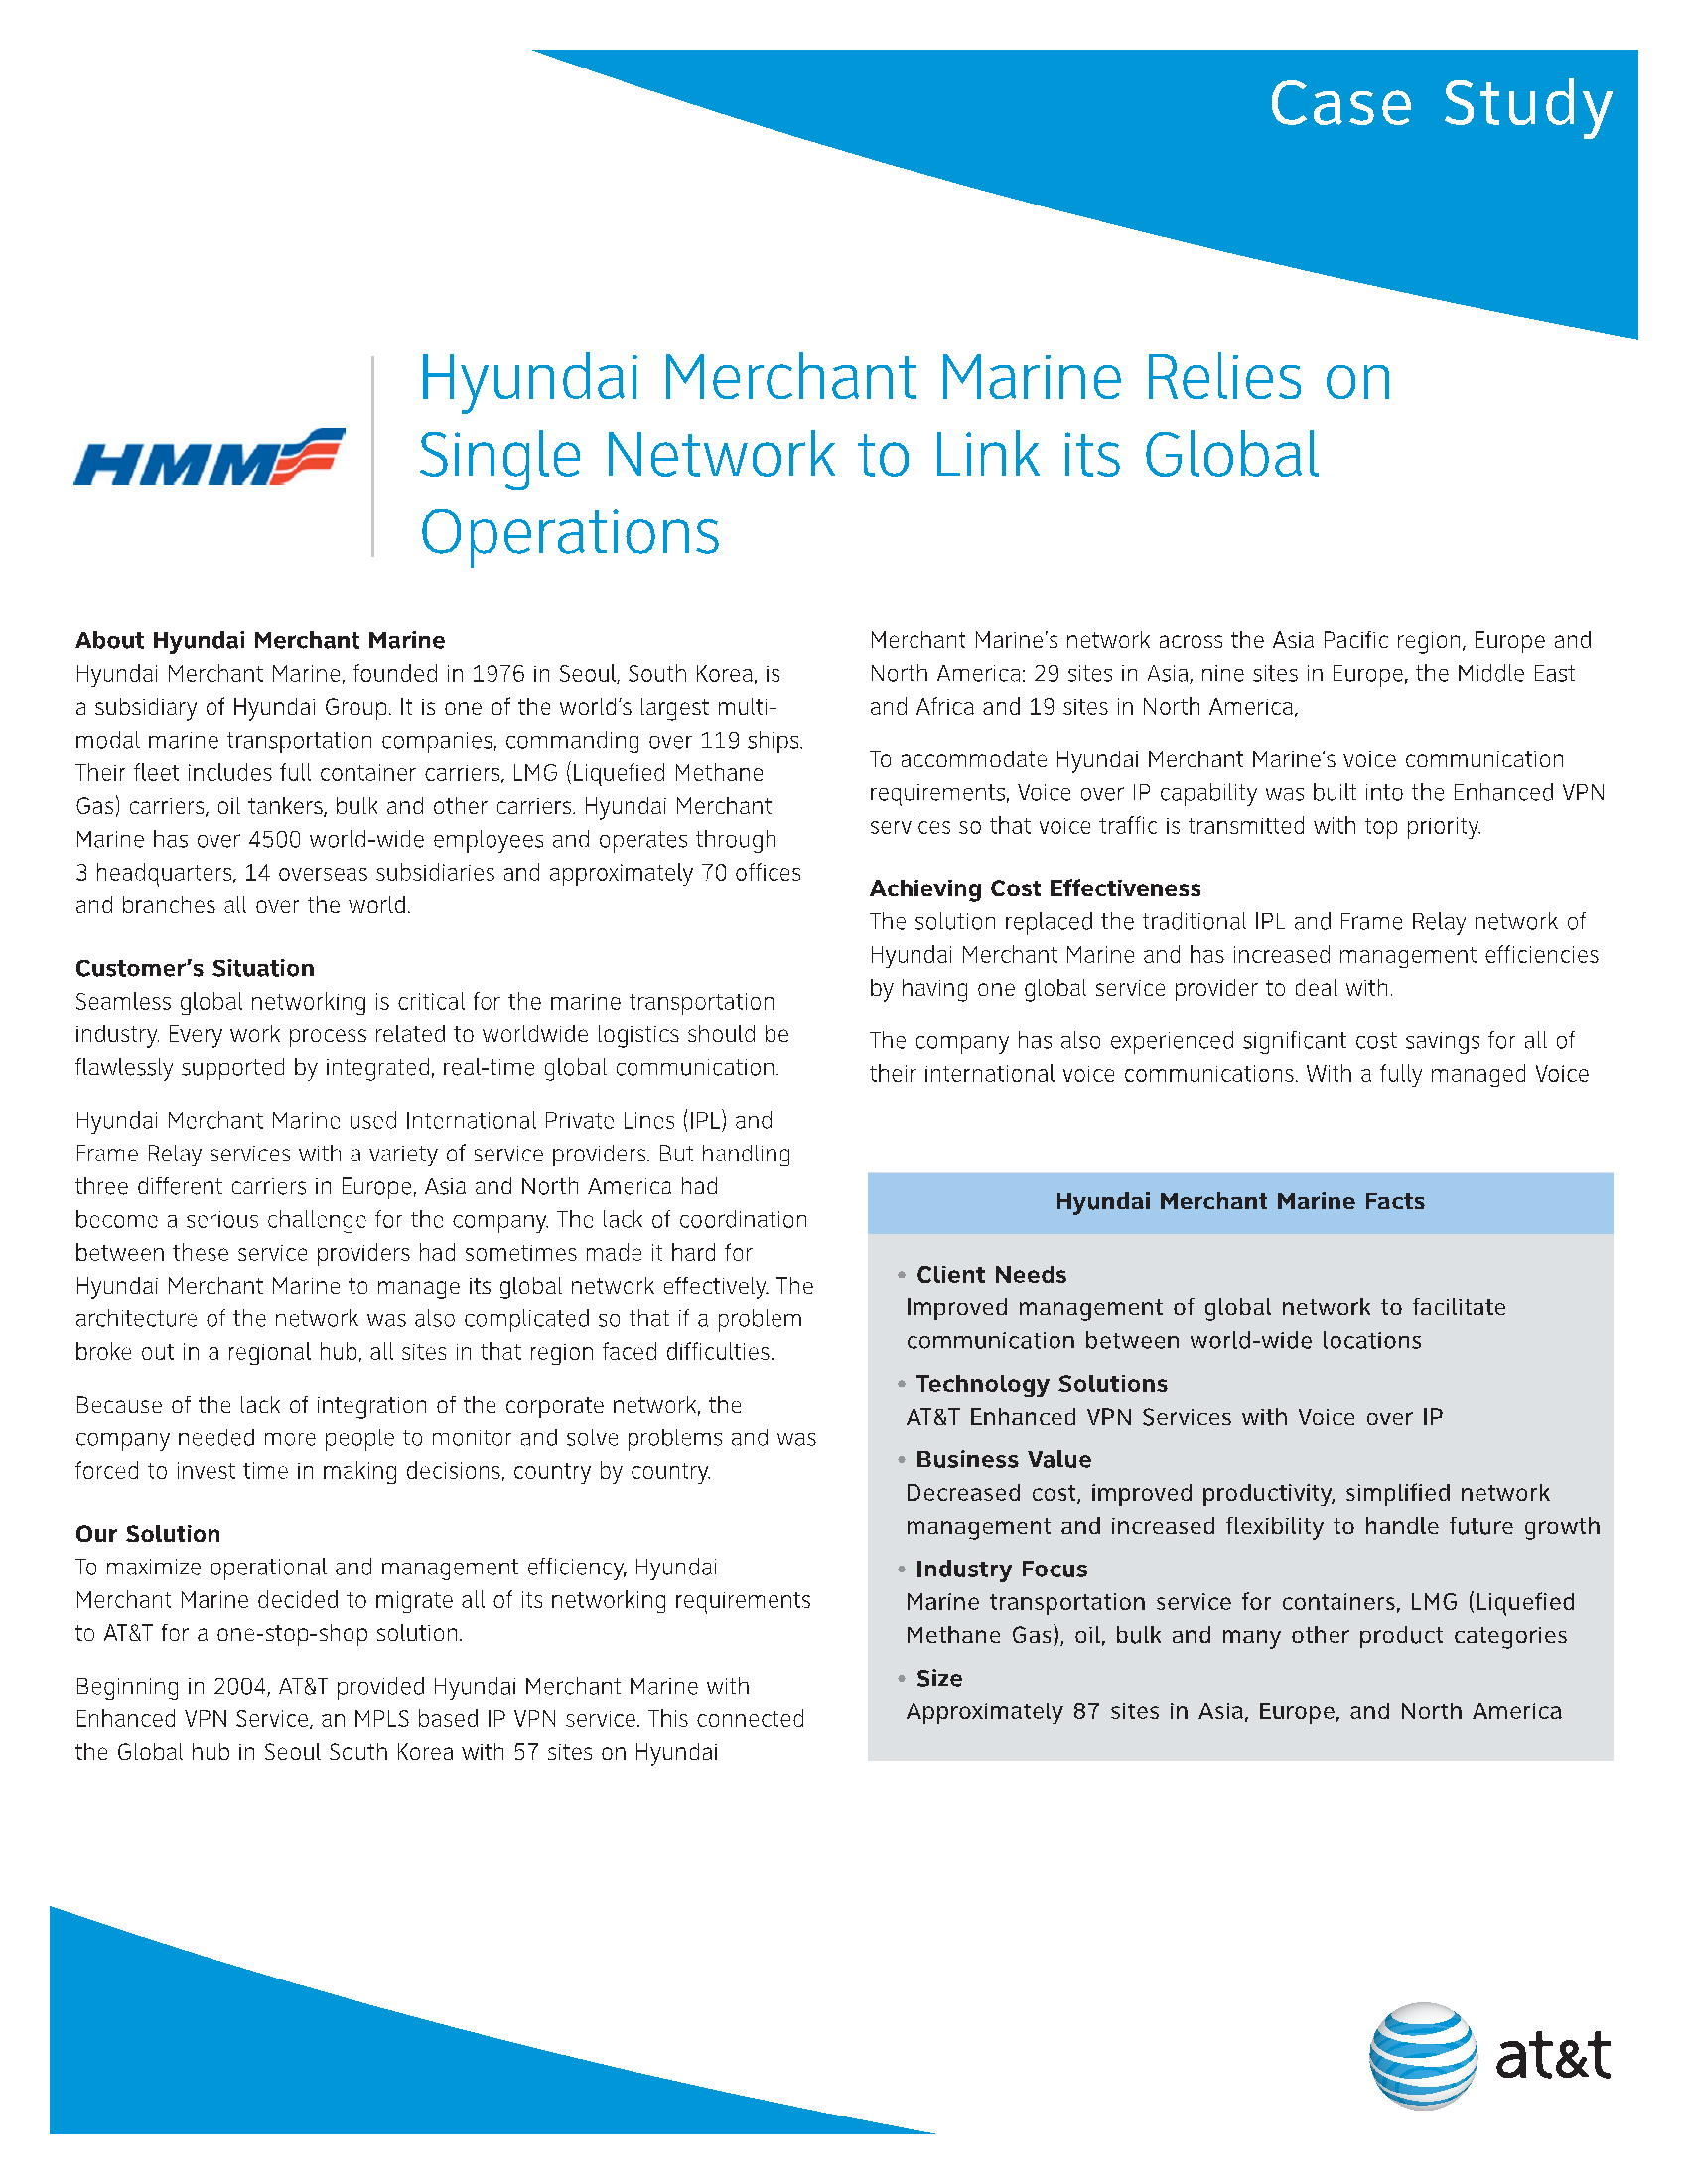 Hyundai Merchant Marine Relies on Single Network to Link its Global Operations 2